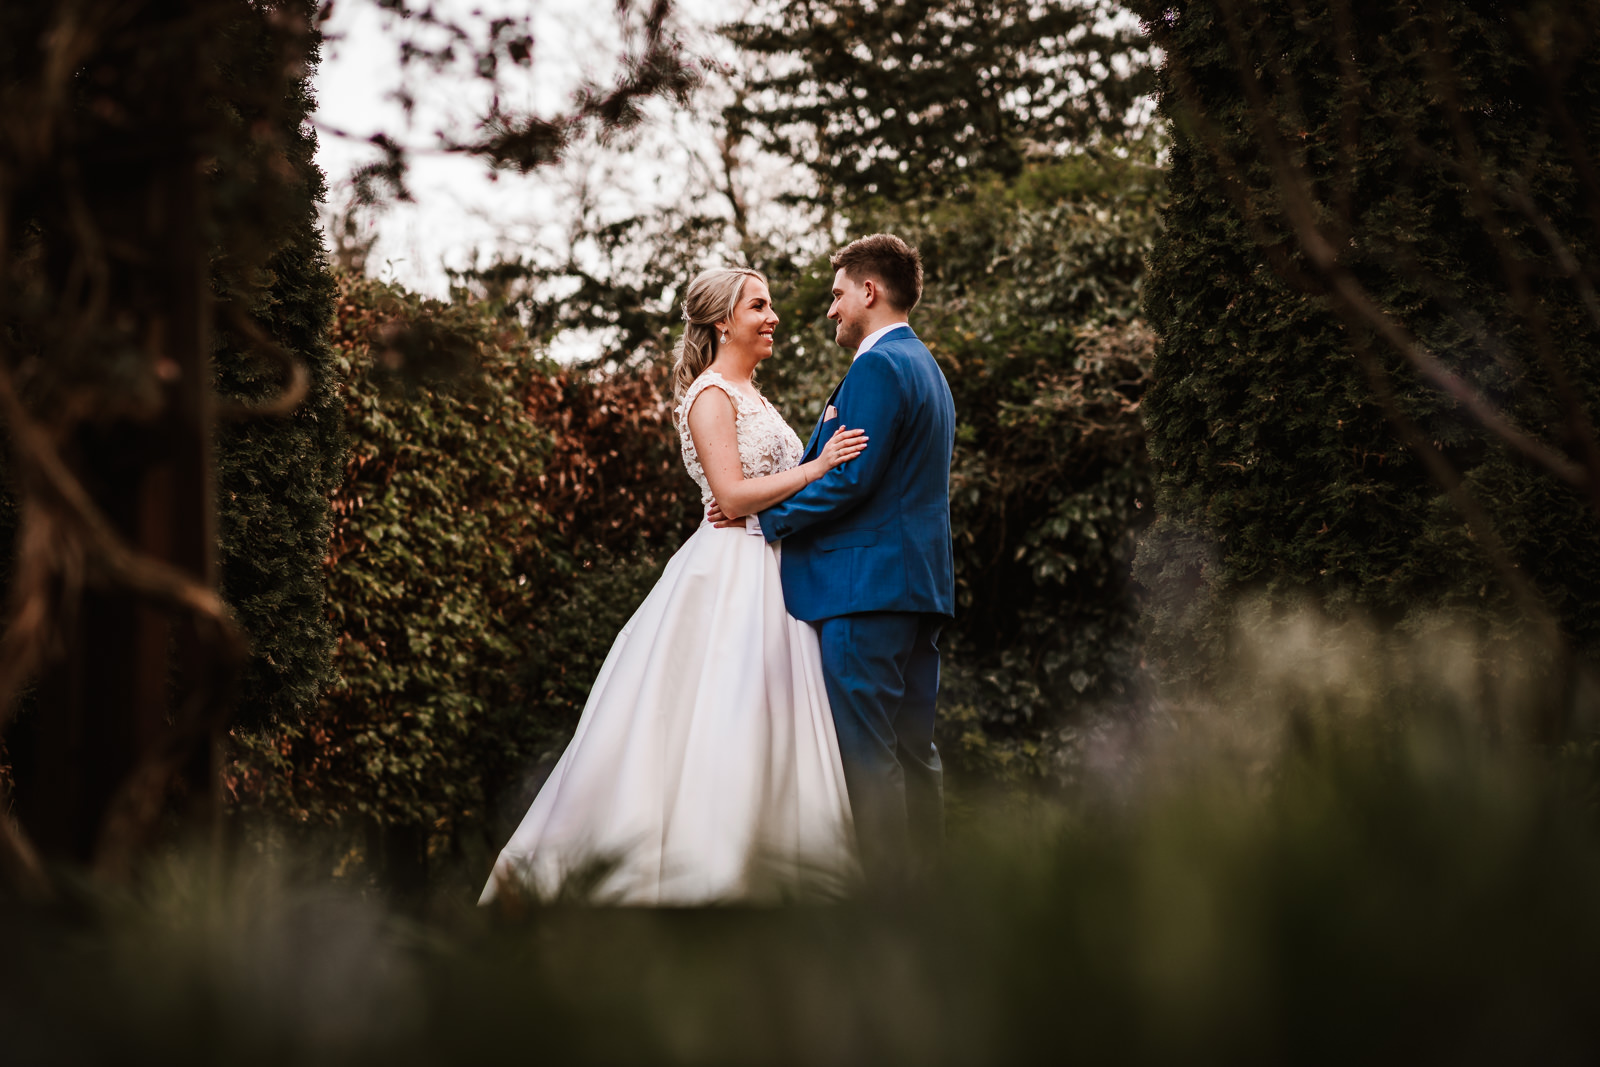 Bride and groom portraits at Nunsmere Hall